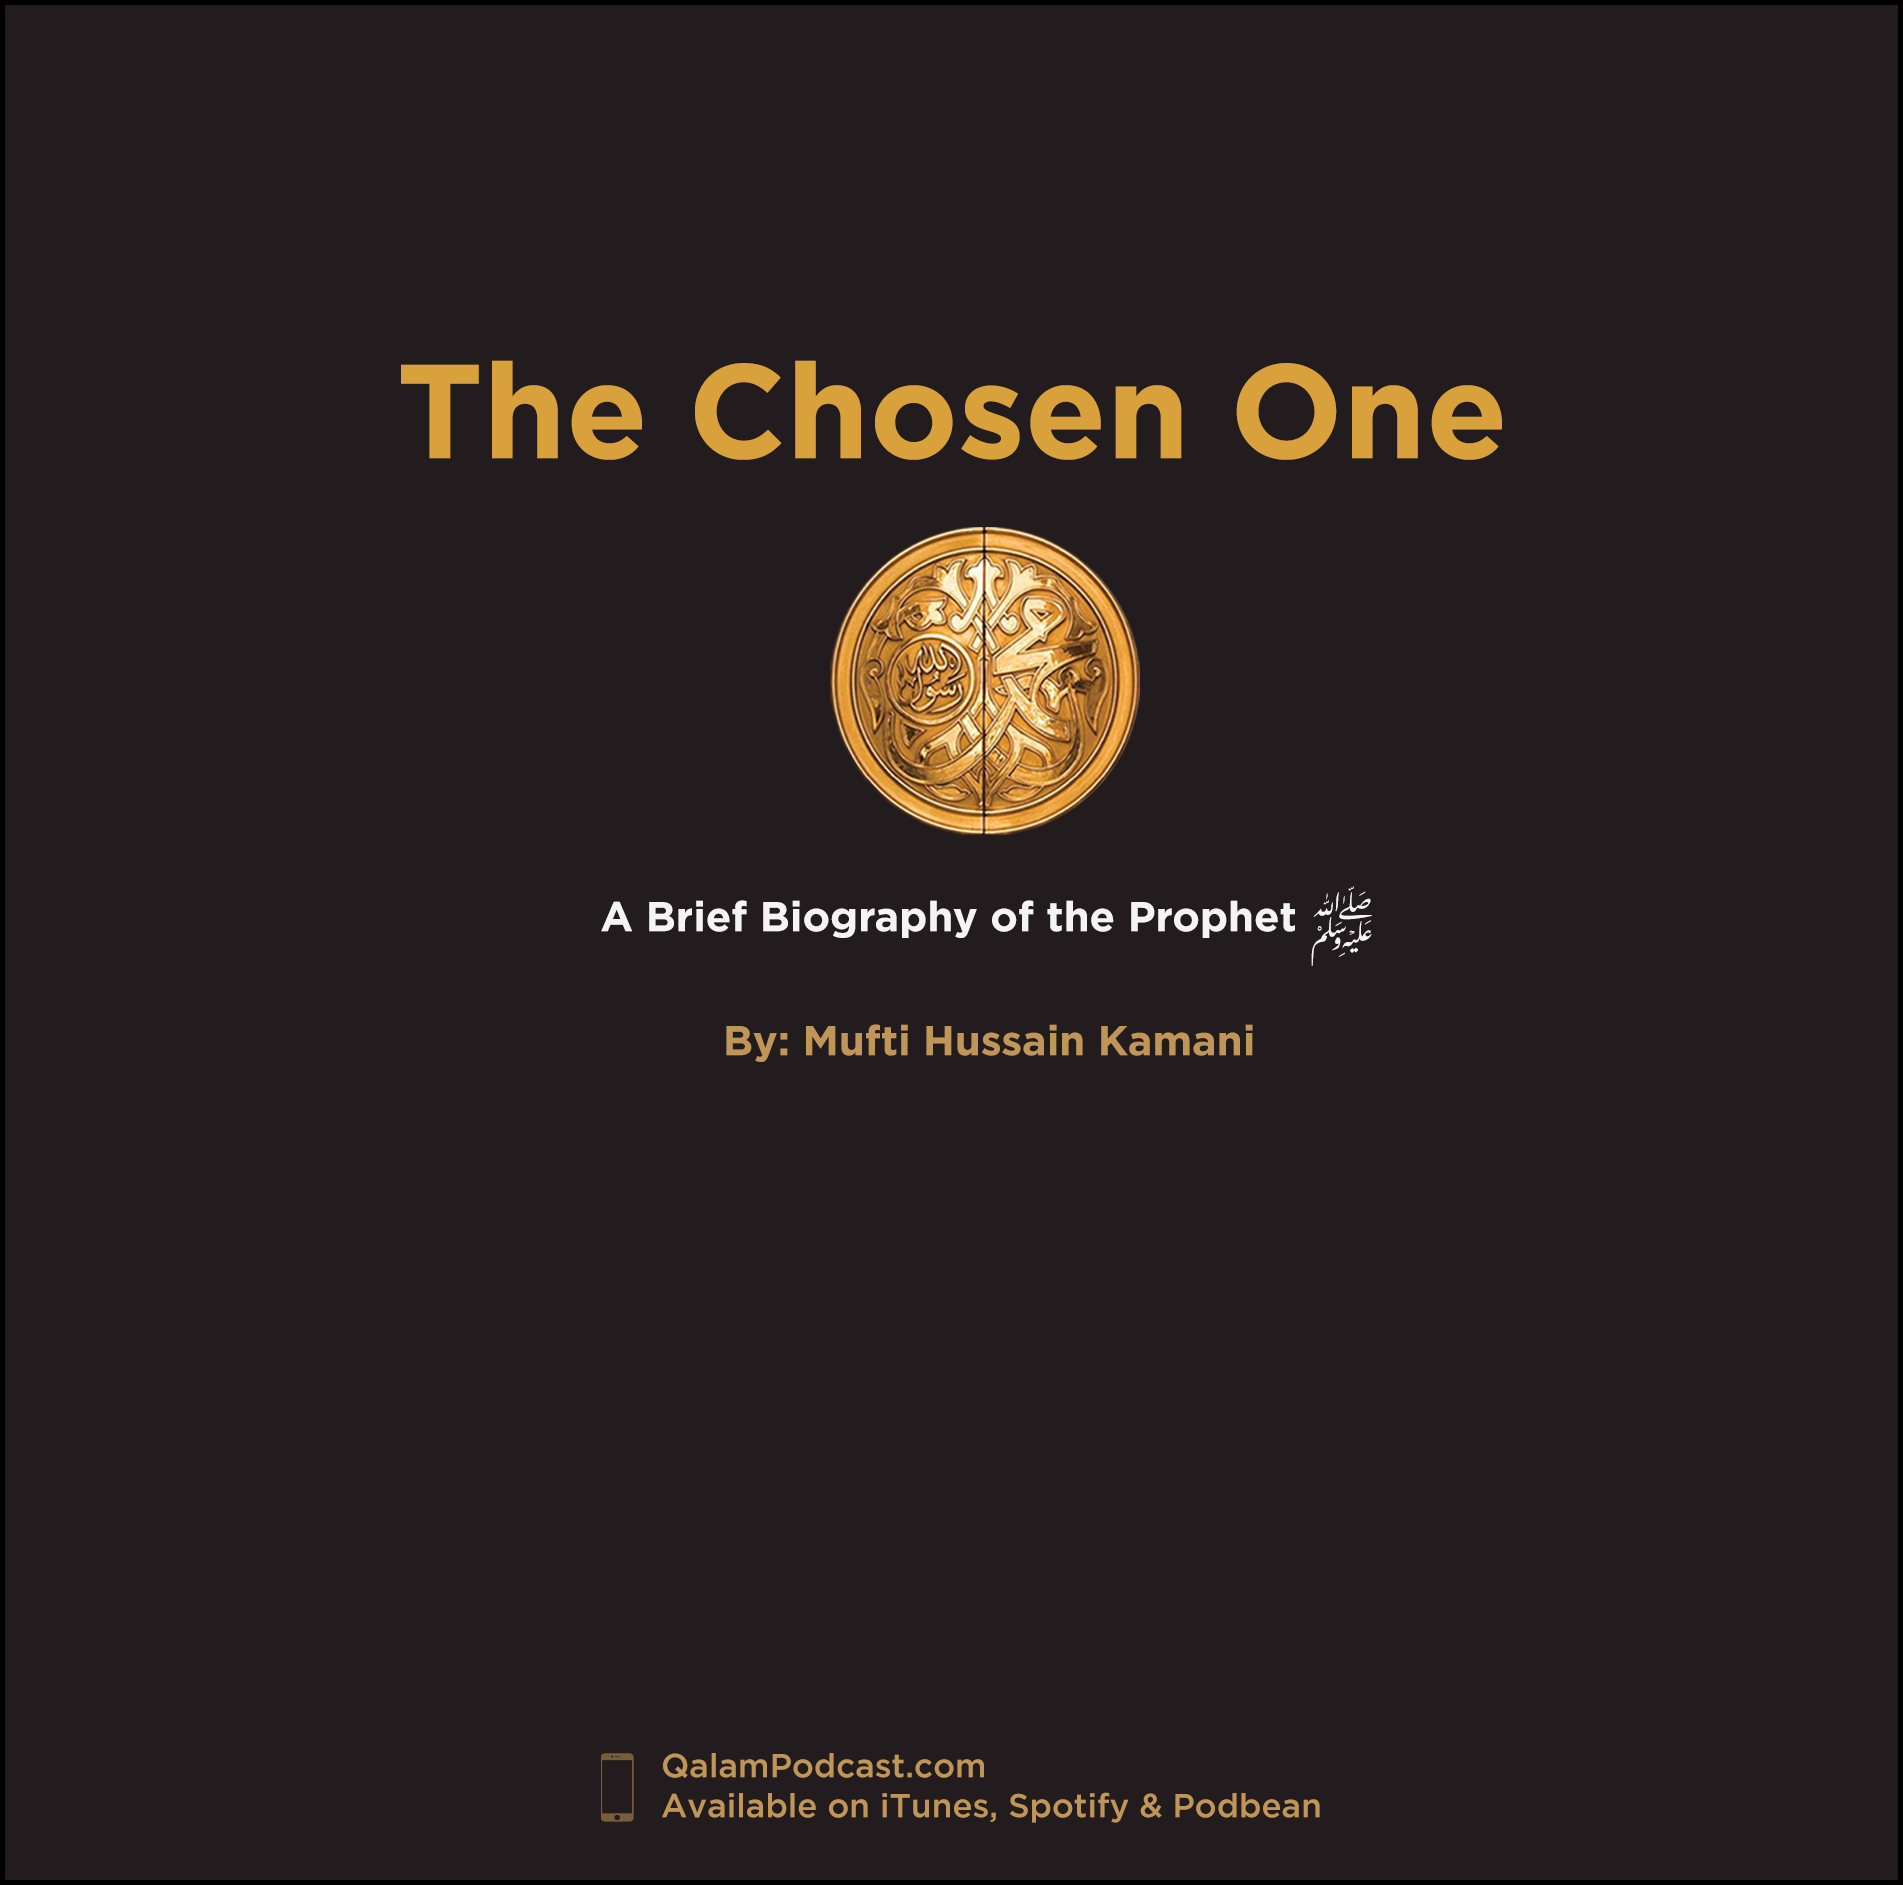 The Chosen One – The Treaty of Hudaibiya